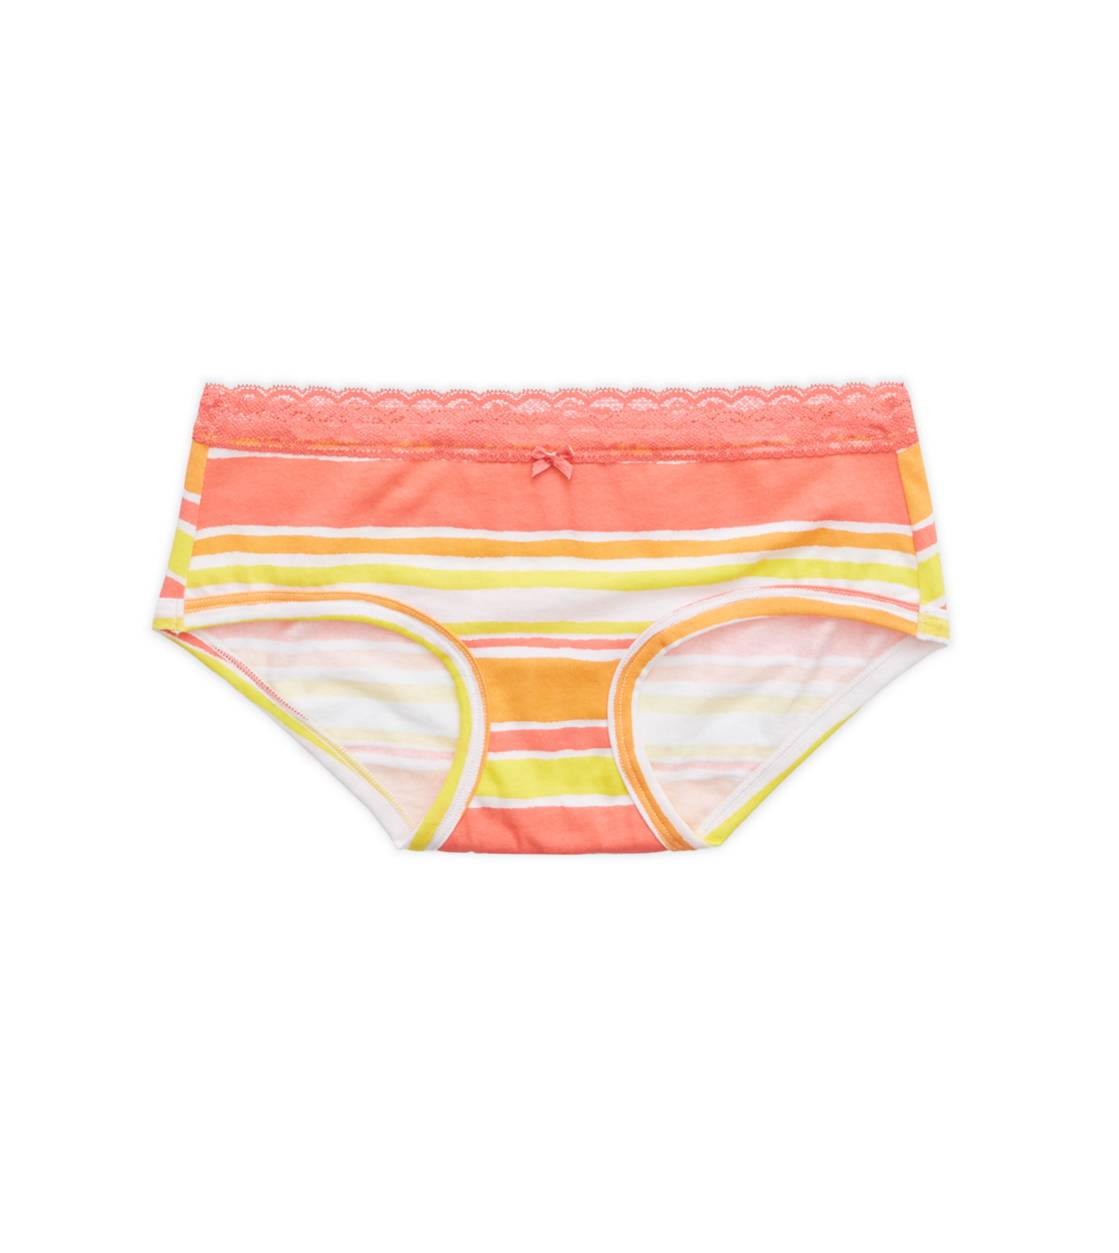 Whipped Strawberry Aerie Printed Boybrief